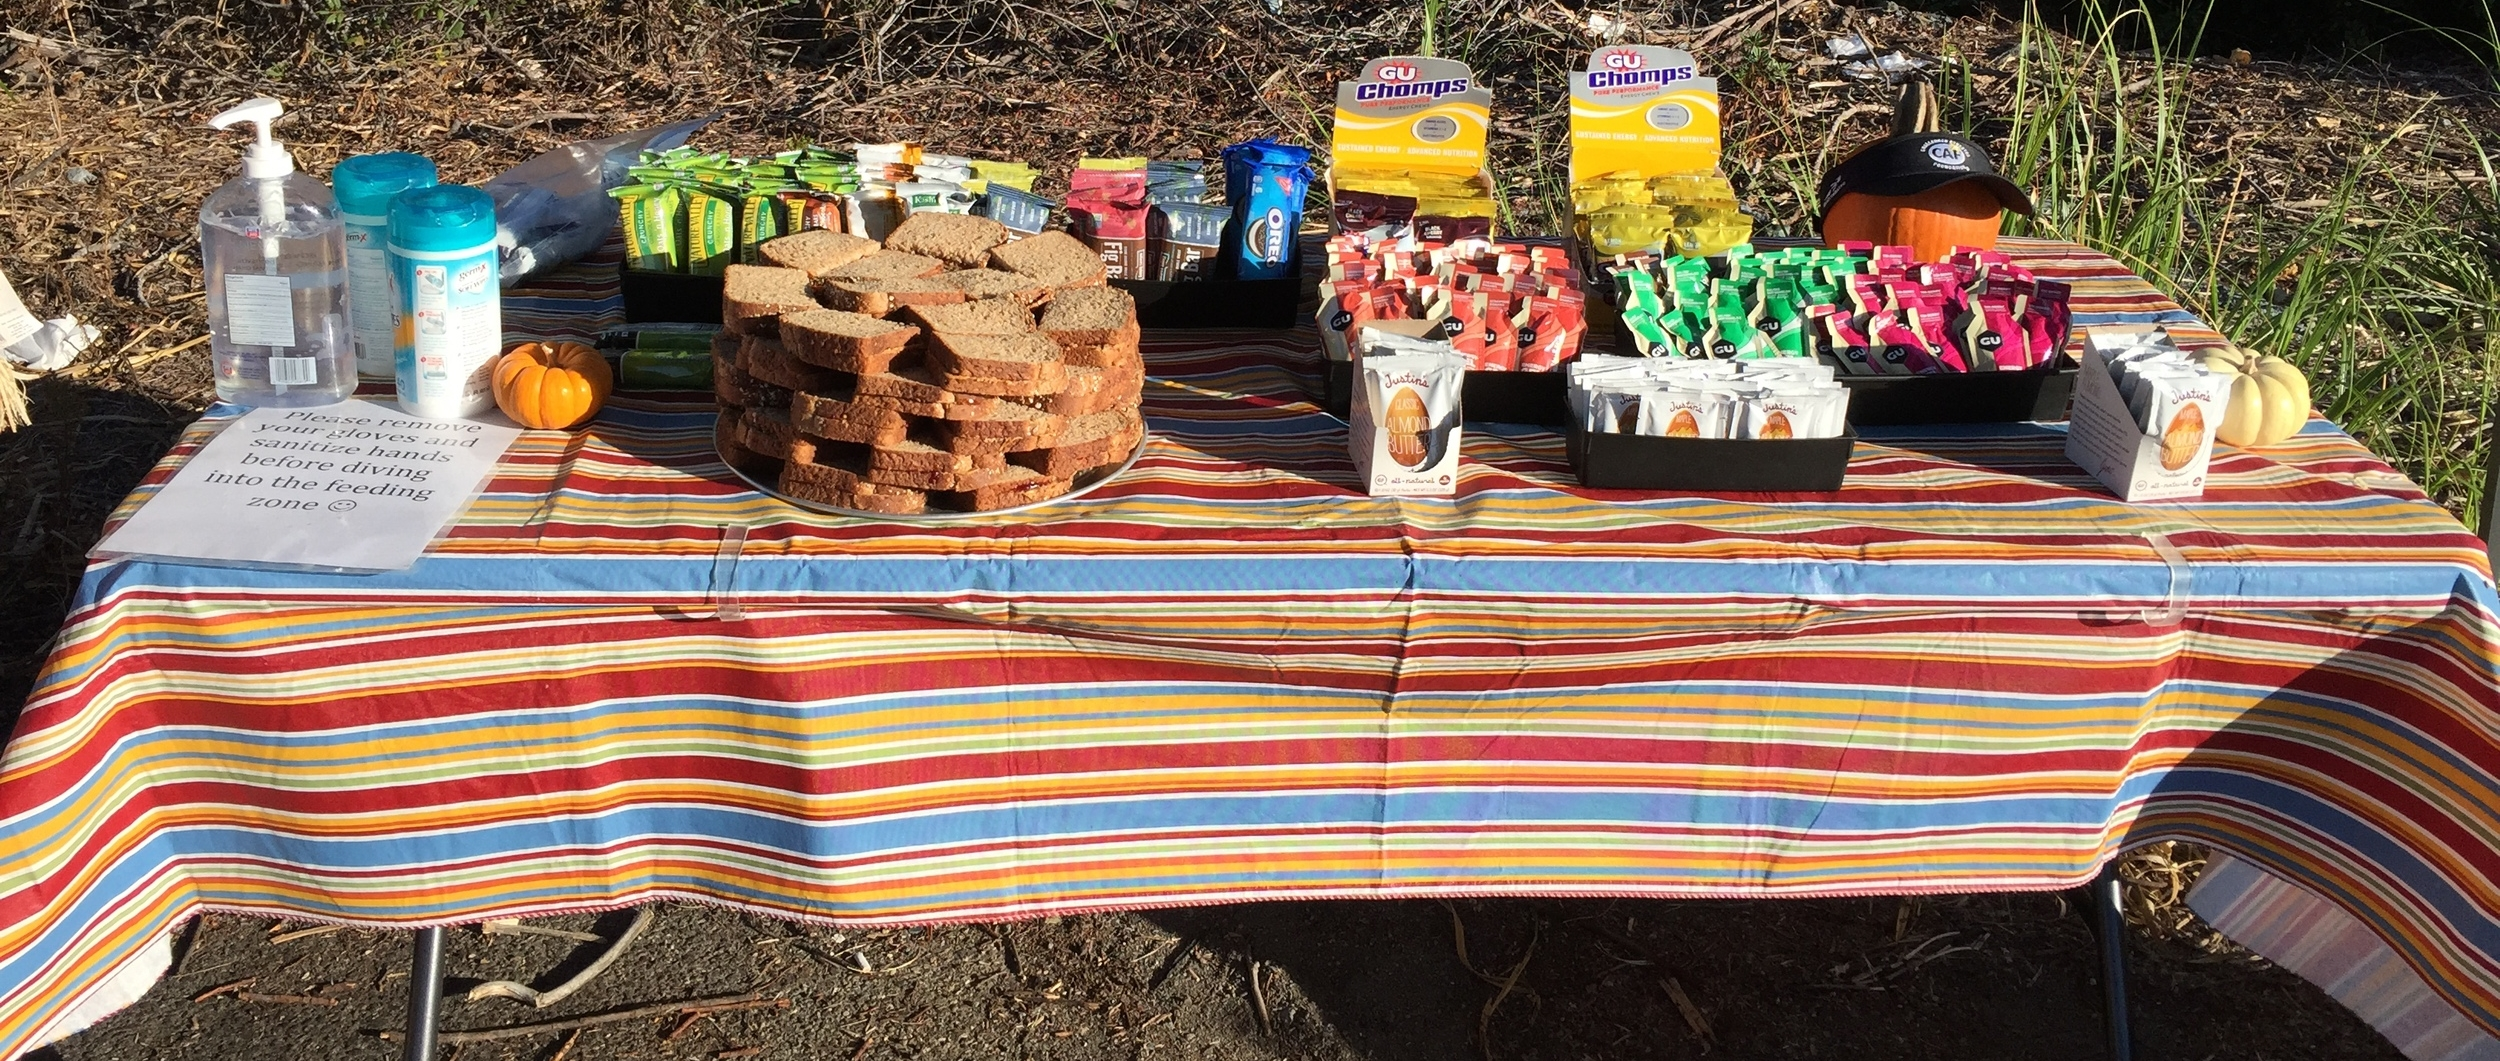 Awesome rest stops loaded with home made cakes, treats, fruit and sandwiches etc